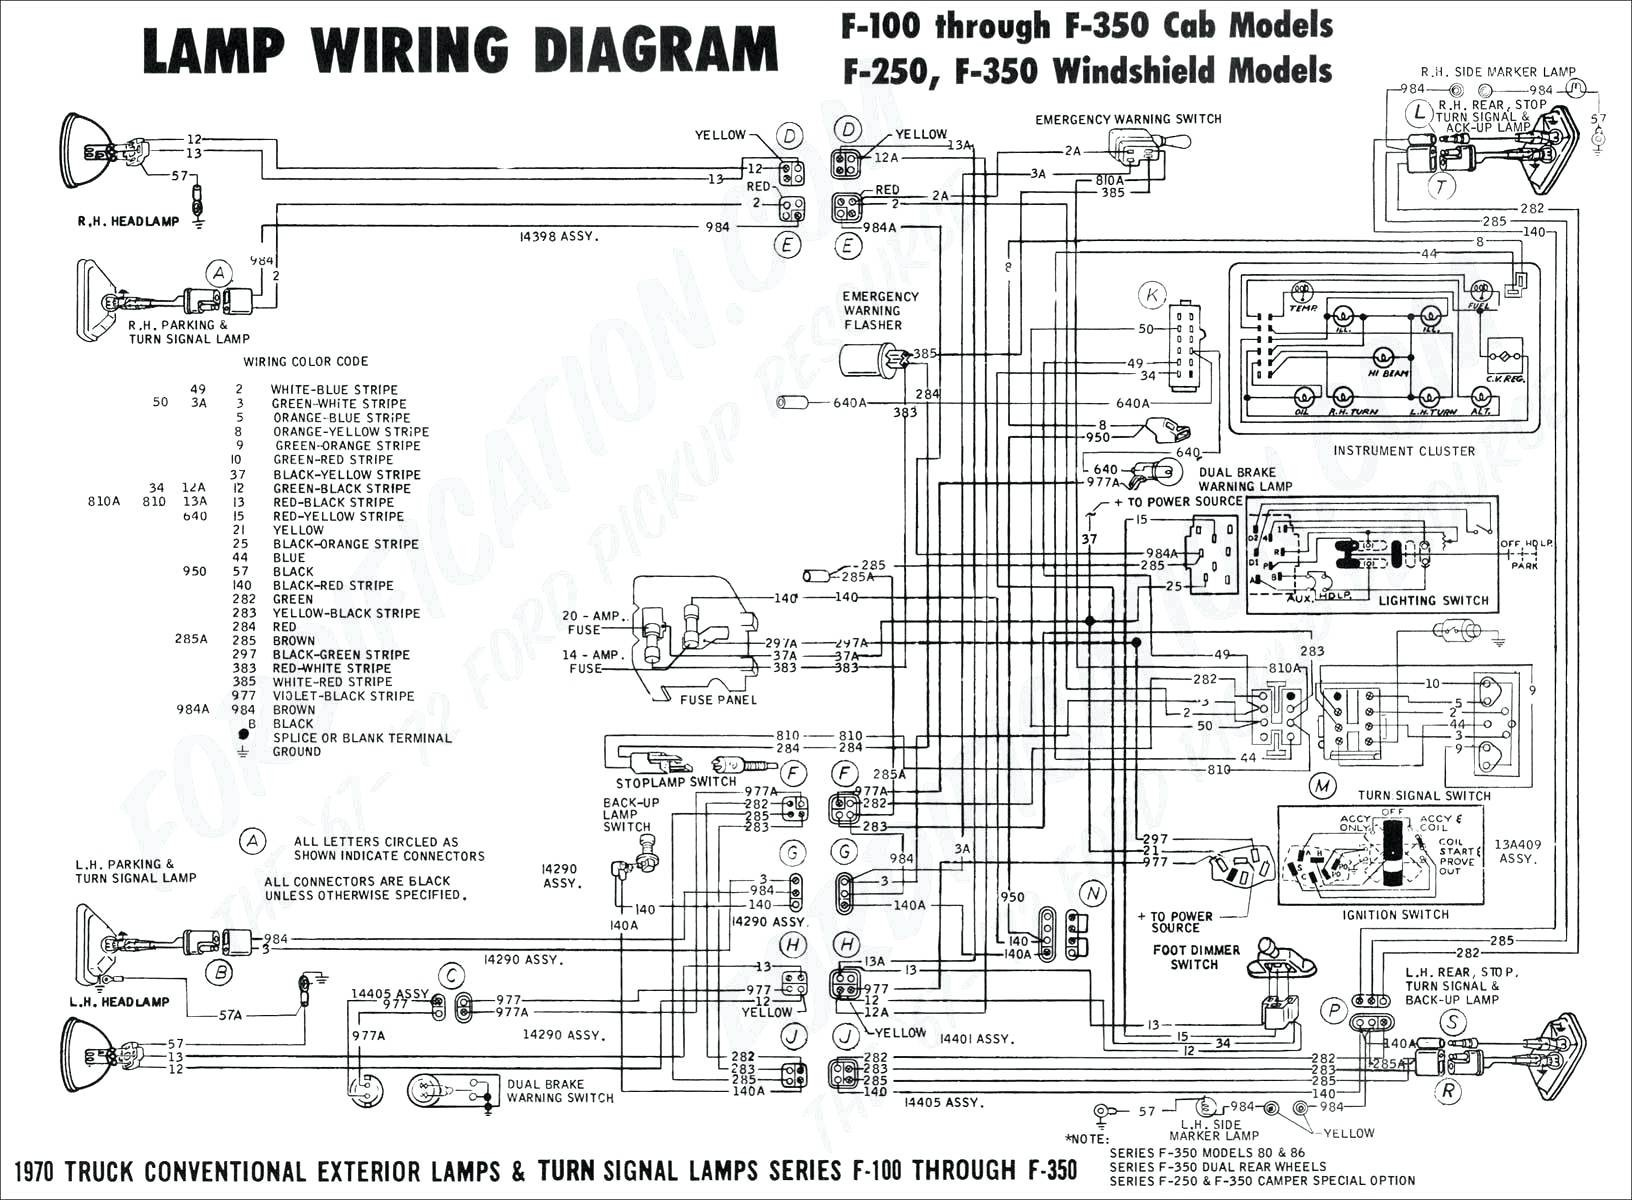 2000 Lincoln Ls V8 Engine Diagram 2000 Lincoln Ls Radio Wiring Diagram Worksheet and Wiring Diagram • Of 2000 Lincoln Ls V8 Engine Diagram Wiring Diagram 2001 Lincoln Ls Rear Worksheet and Wiring Diagram •